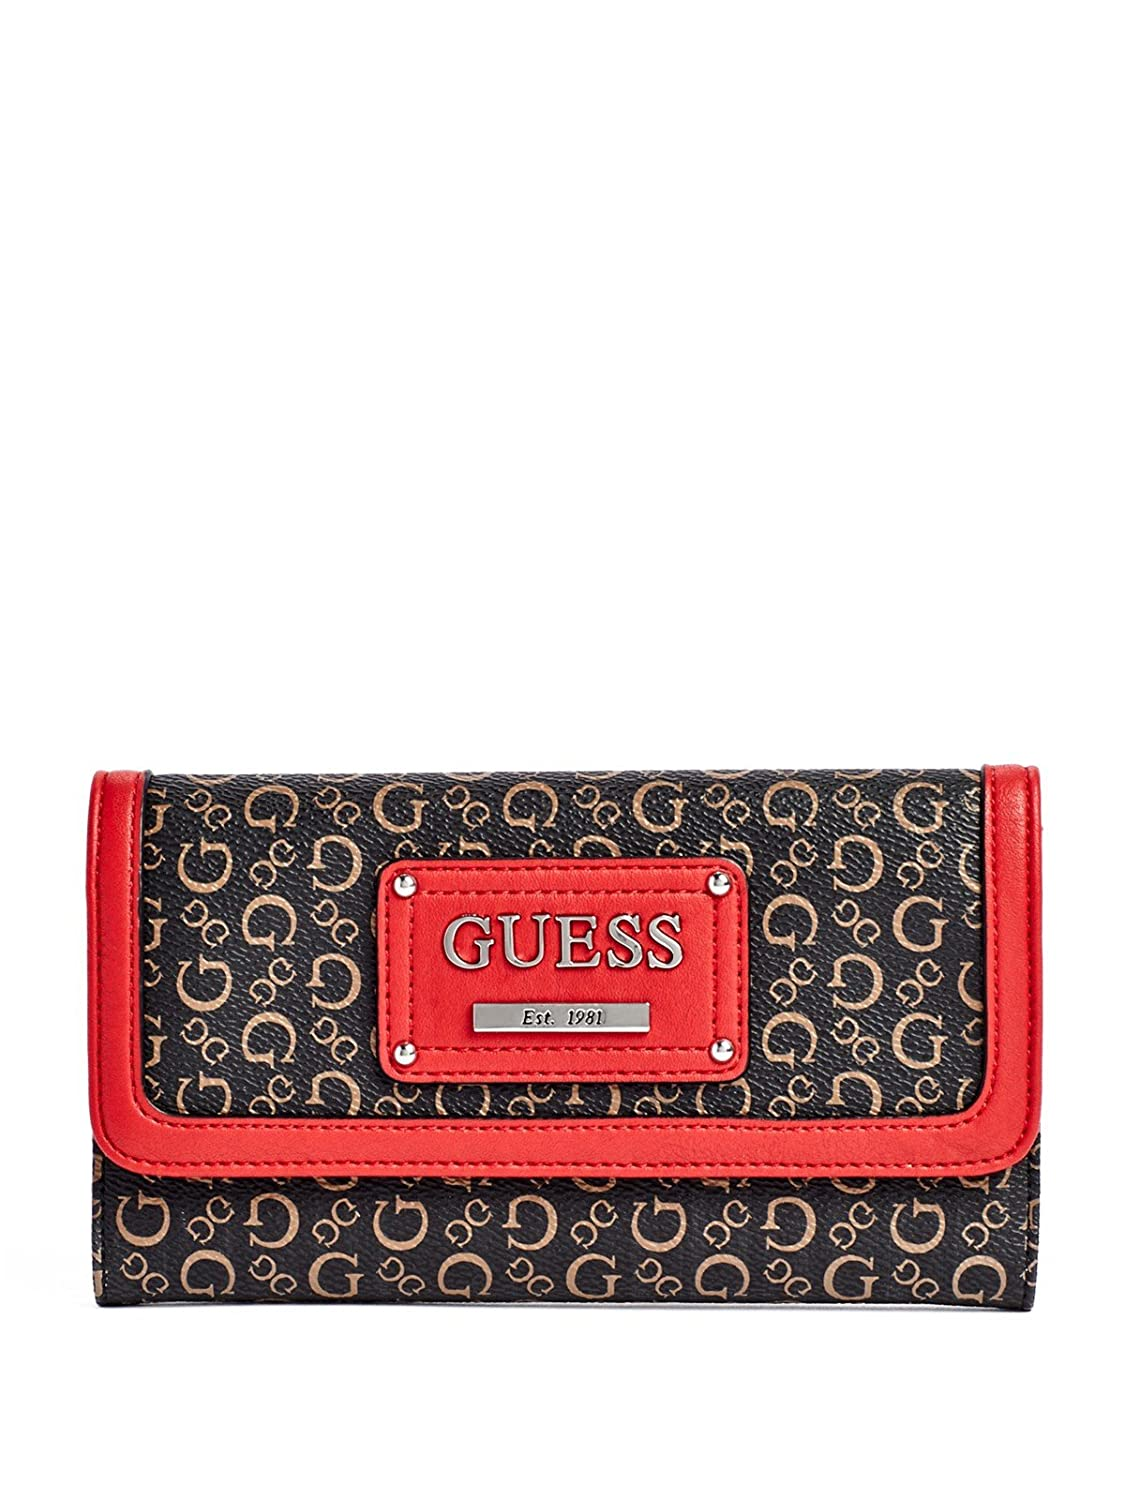 Guess Proposal Logo Large Checkbook Wallet Clutch Bag, Natural / Red